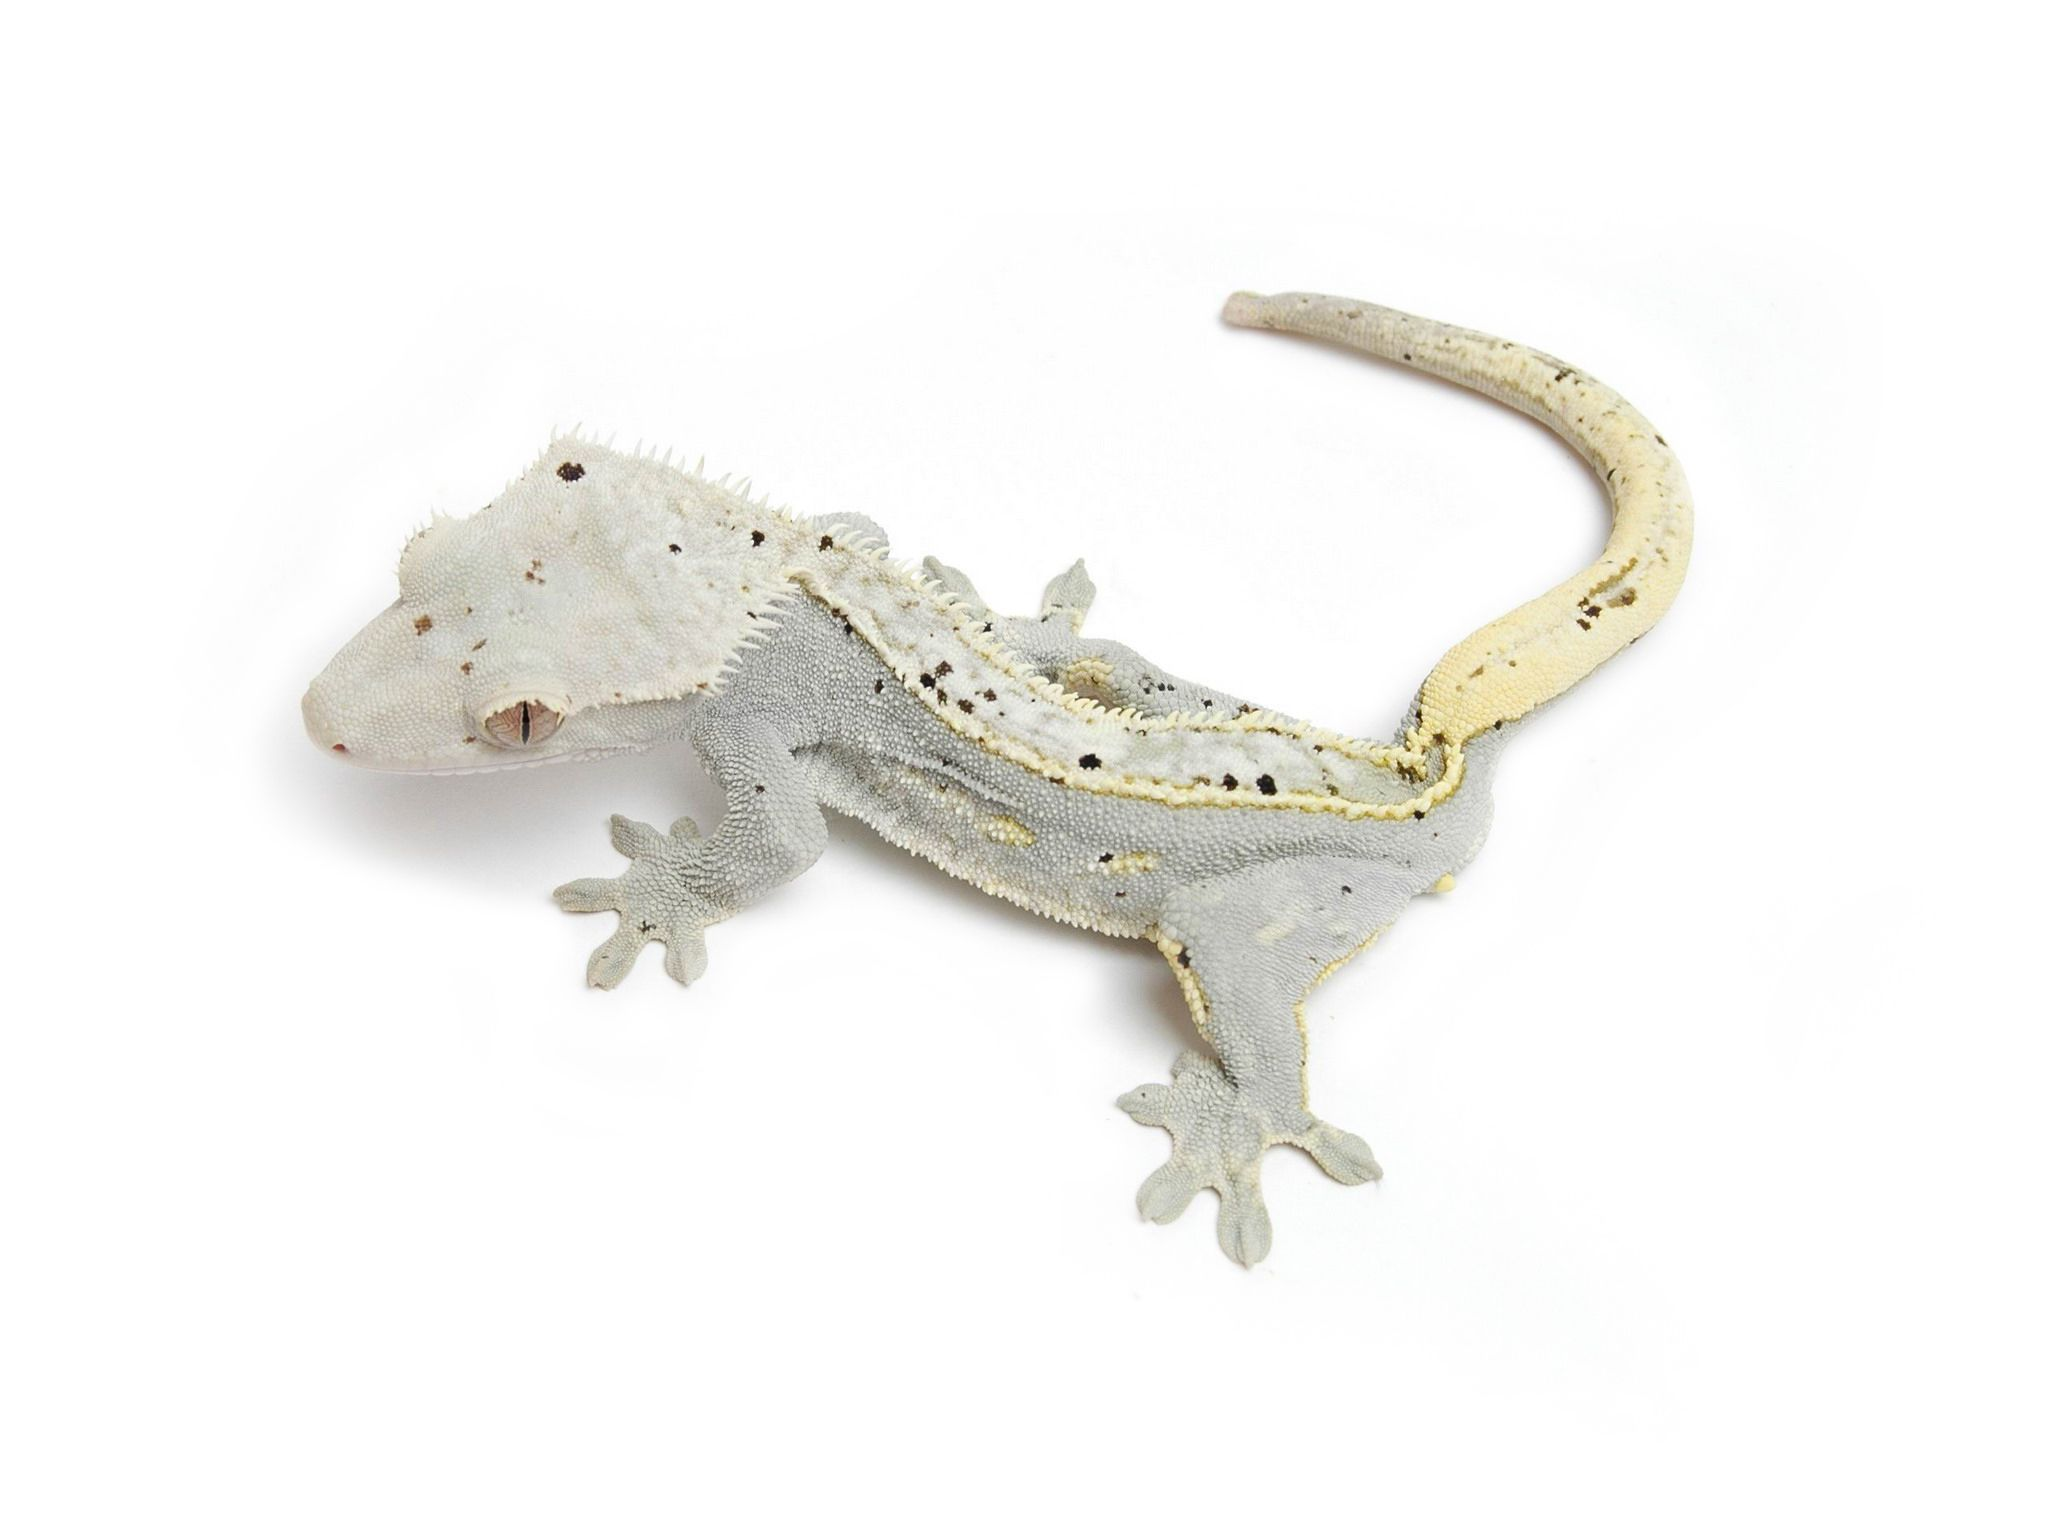 MoonGlow crestie. From the urban gecko. I want this beauty too ...